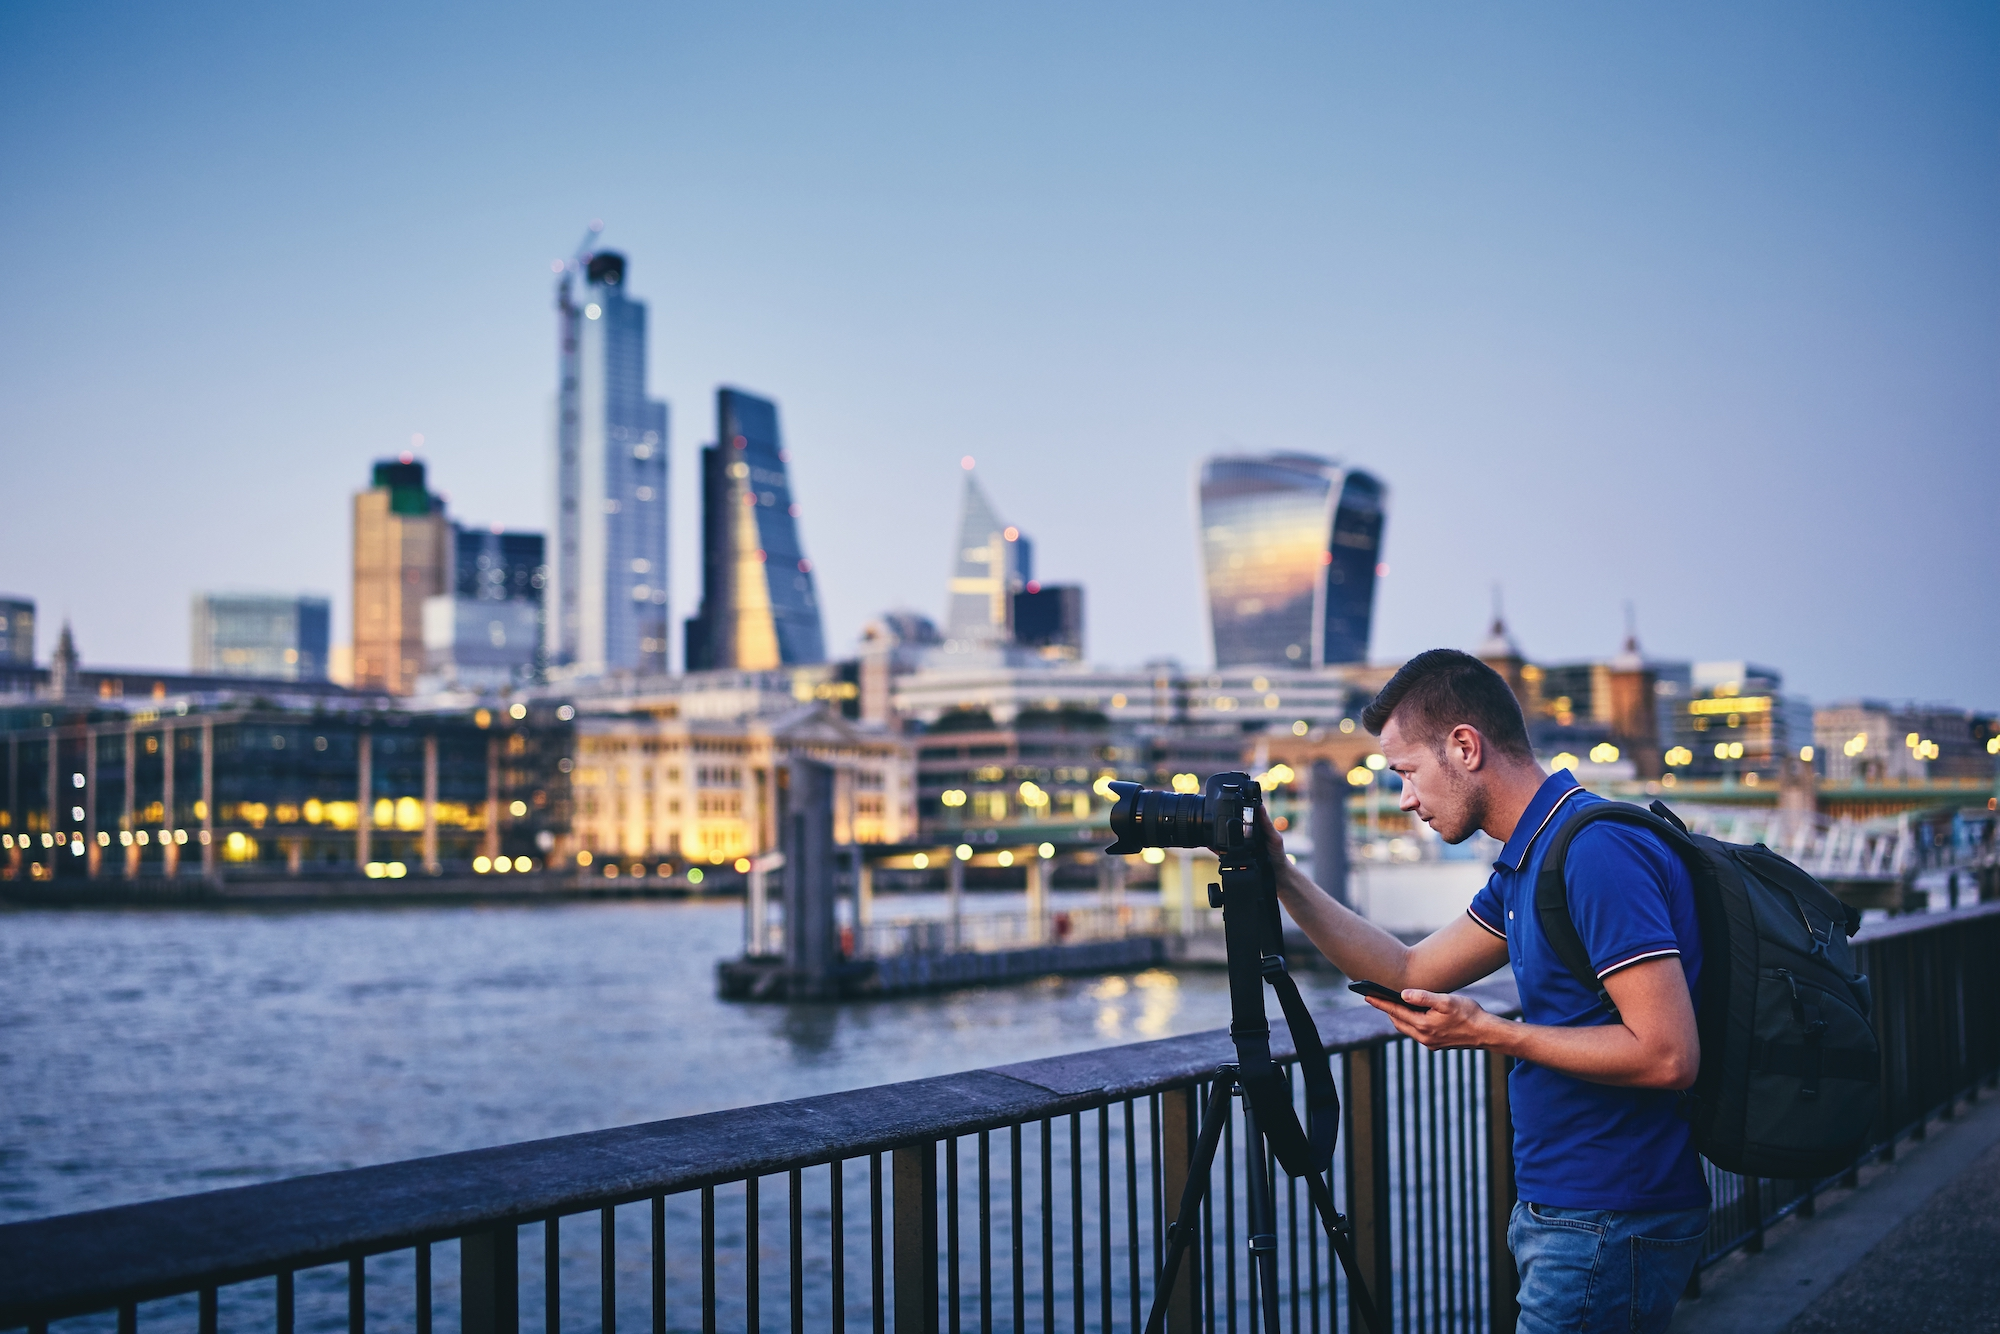 Photographer taking an architectural shot of the City of London skyline